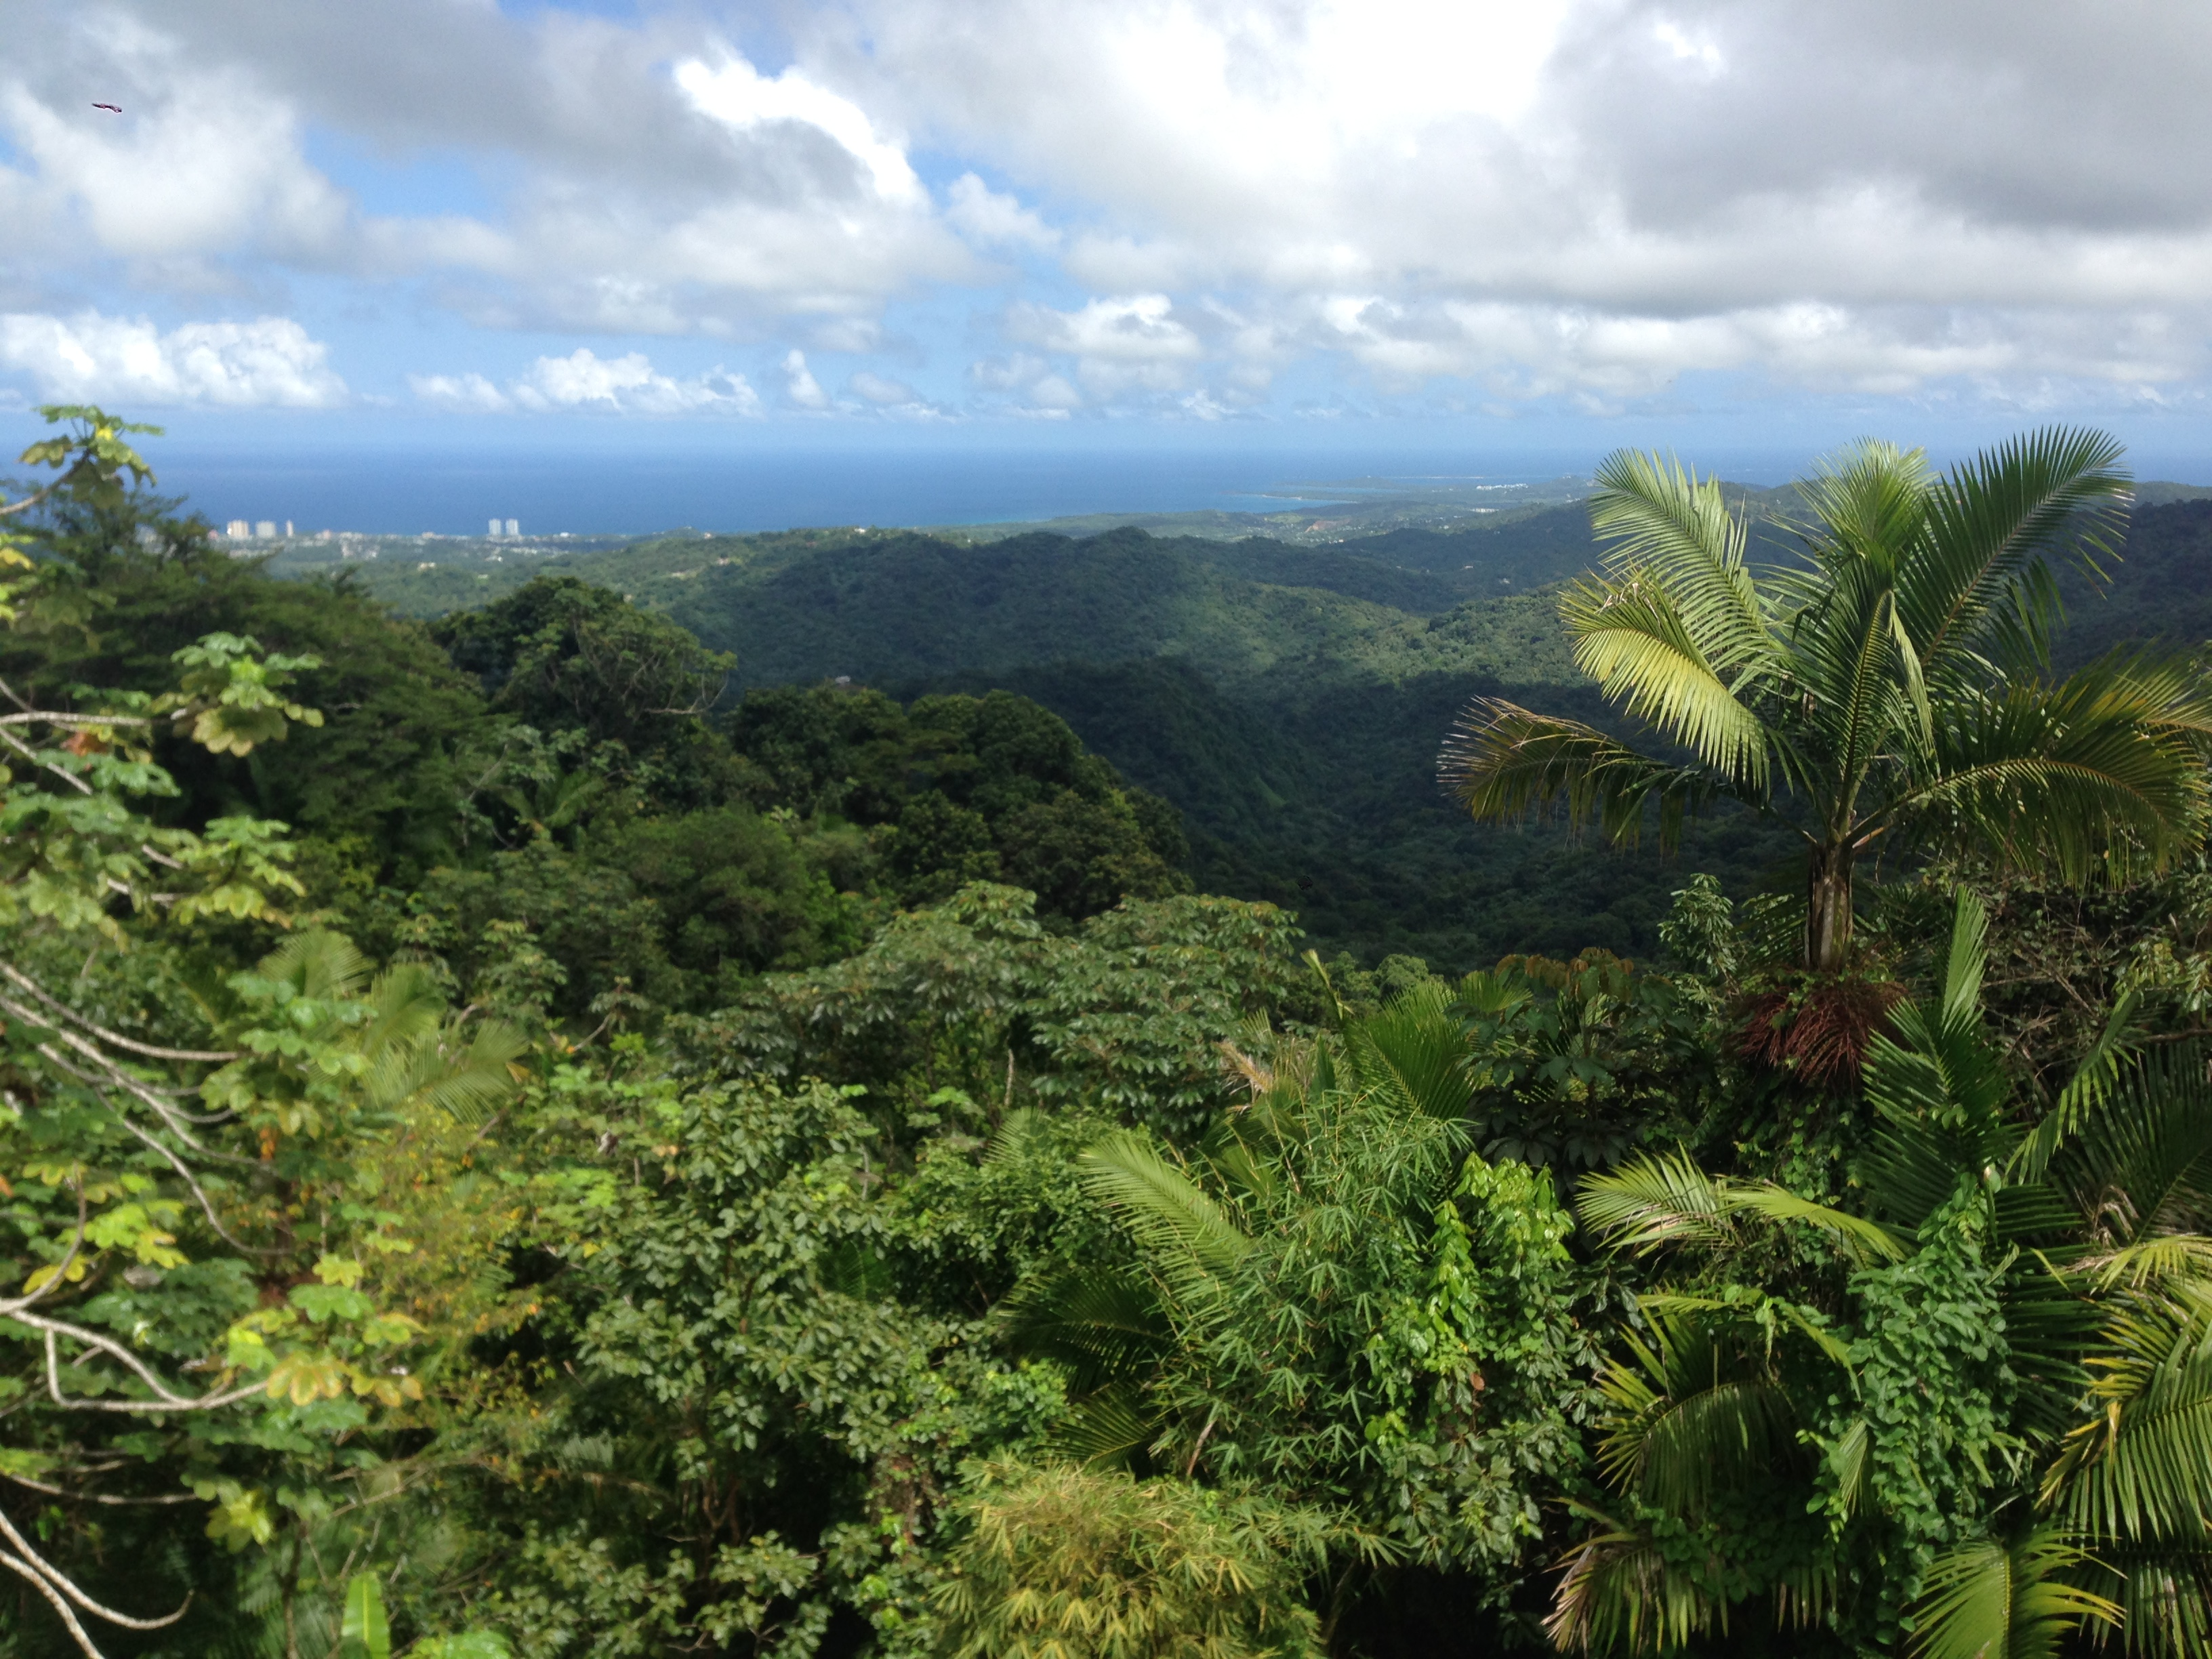 From El Yunque